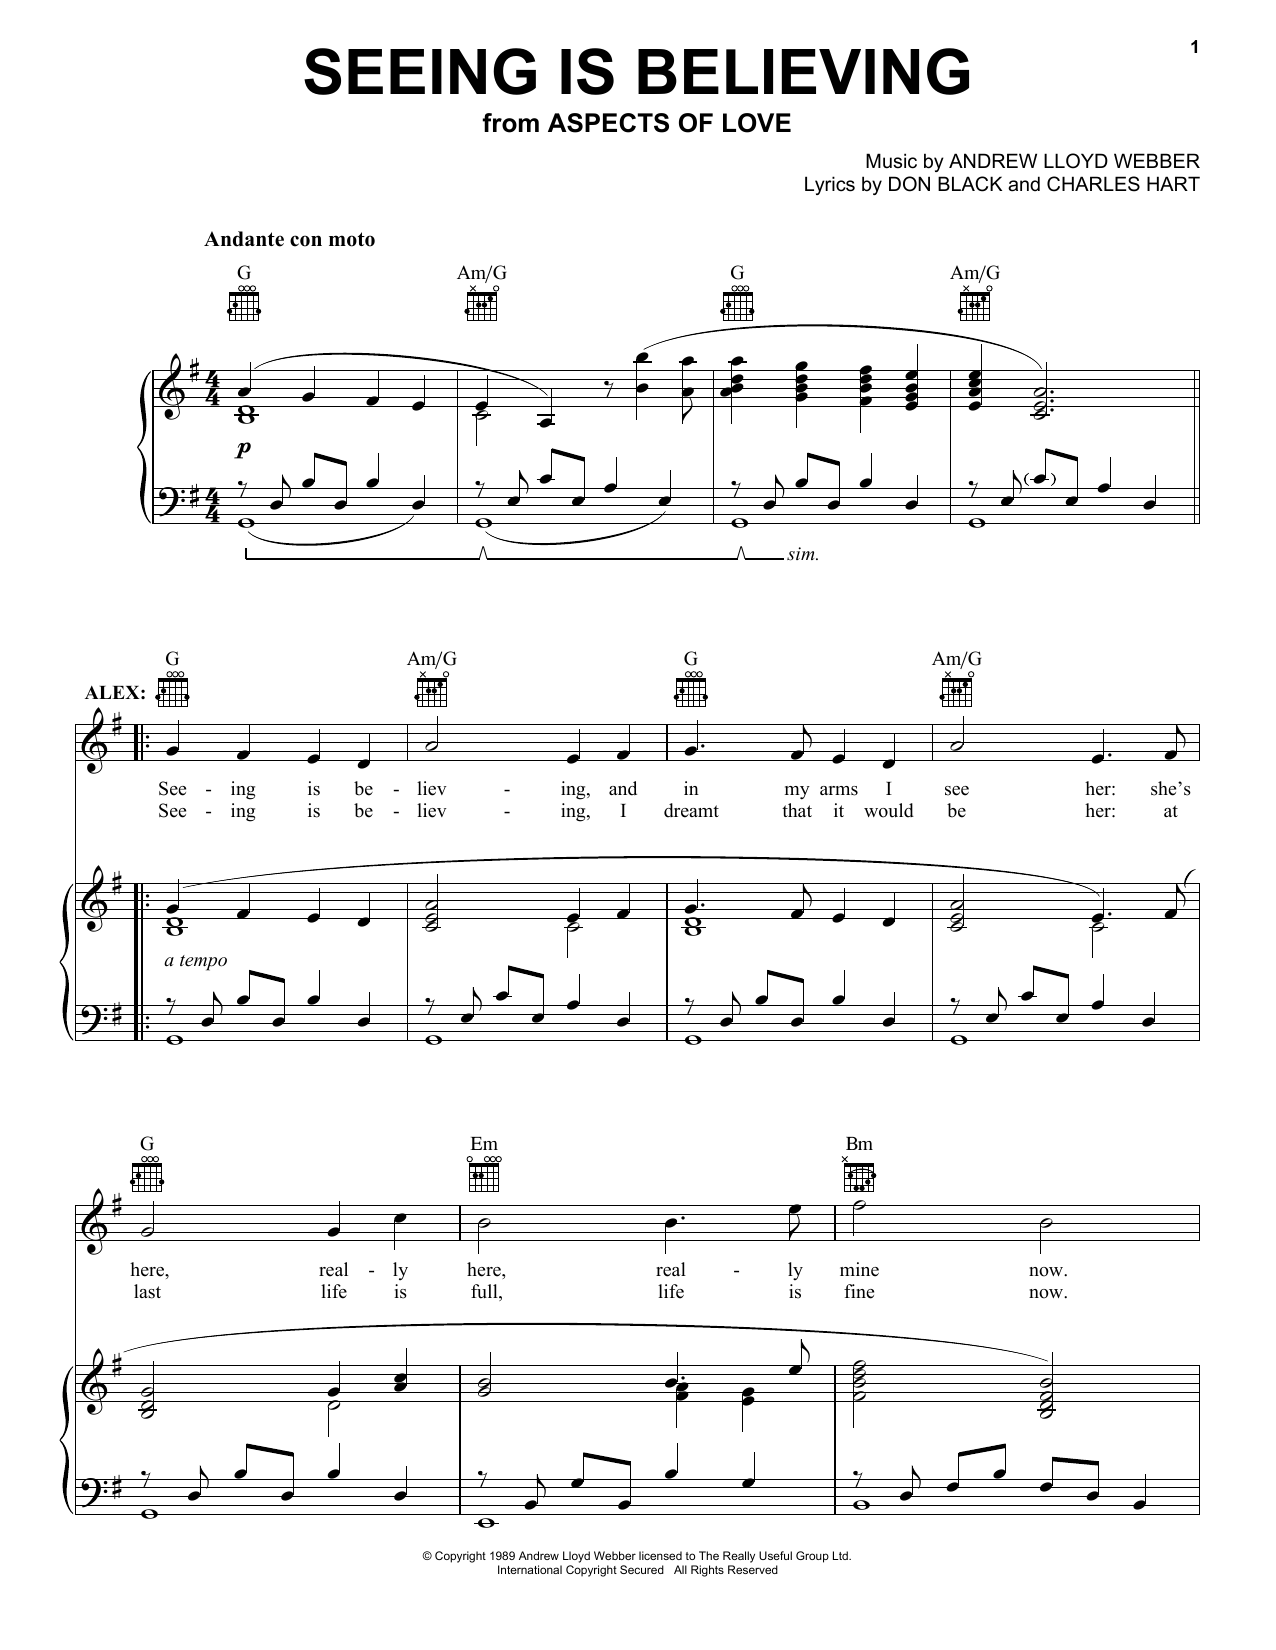 Andrew Lloyd Webber Seeing Is Believing (from Aspects of Love) sheet music notes printable PDF score